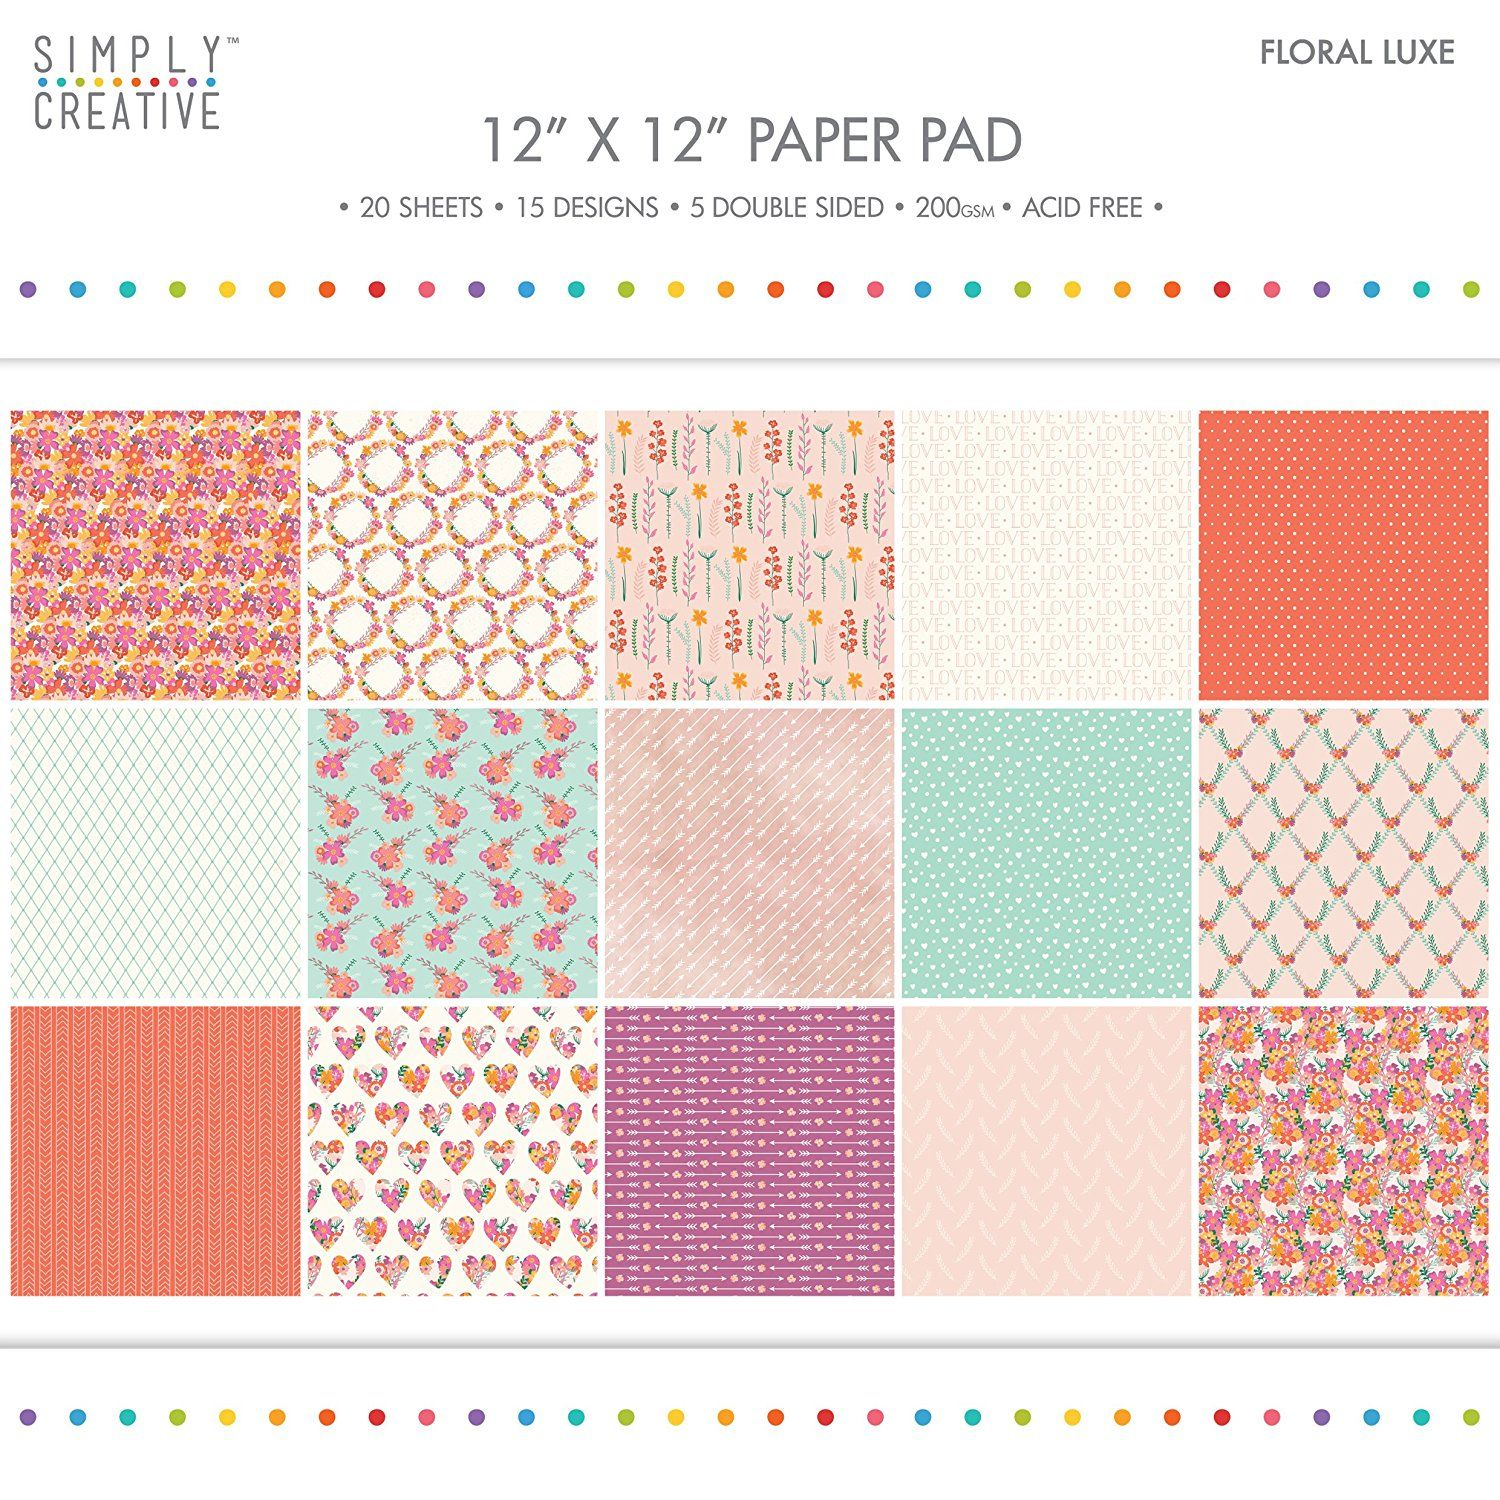 6 X 6 SAMPLE PACK 15 SHEETS DOVECRAFT SIMPLY CREATIVE FLORAL LUXE PAPERS